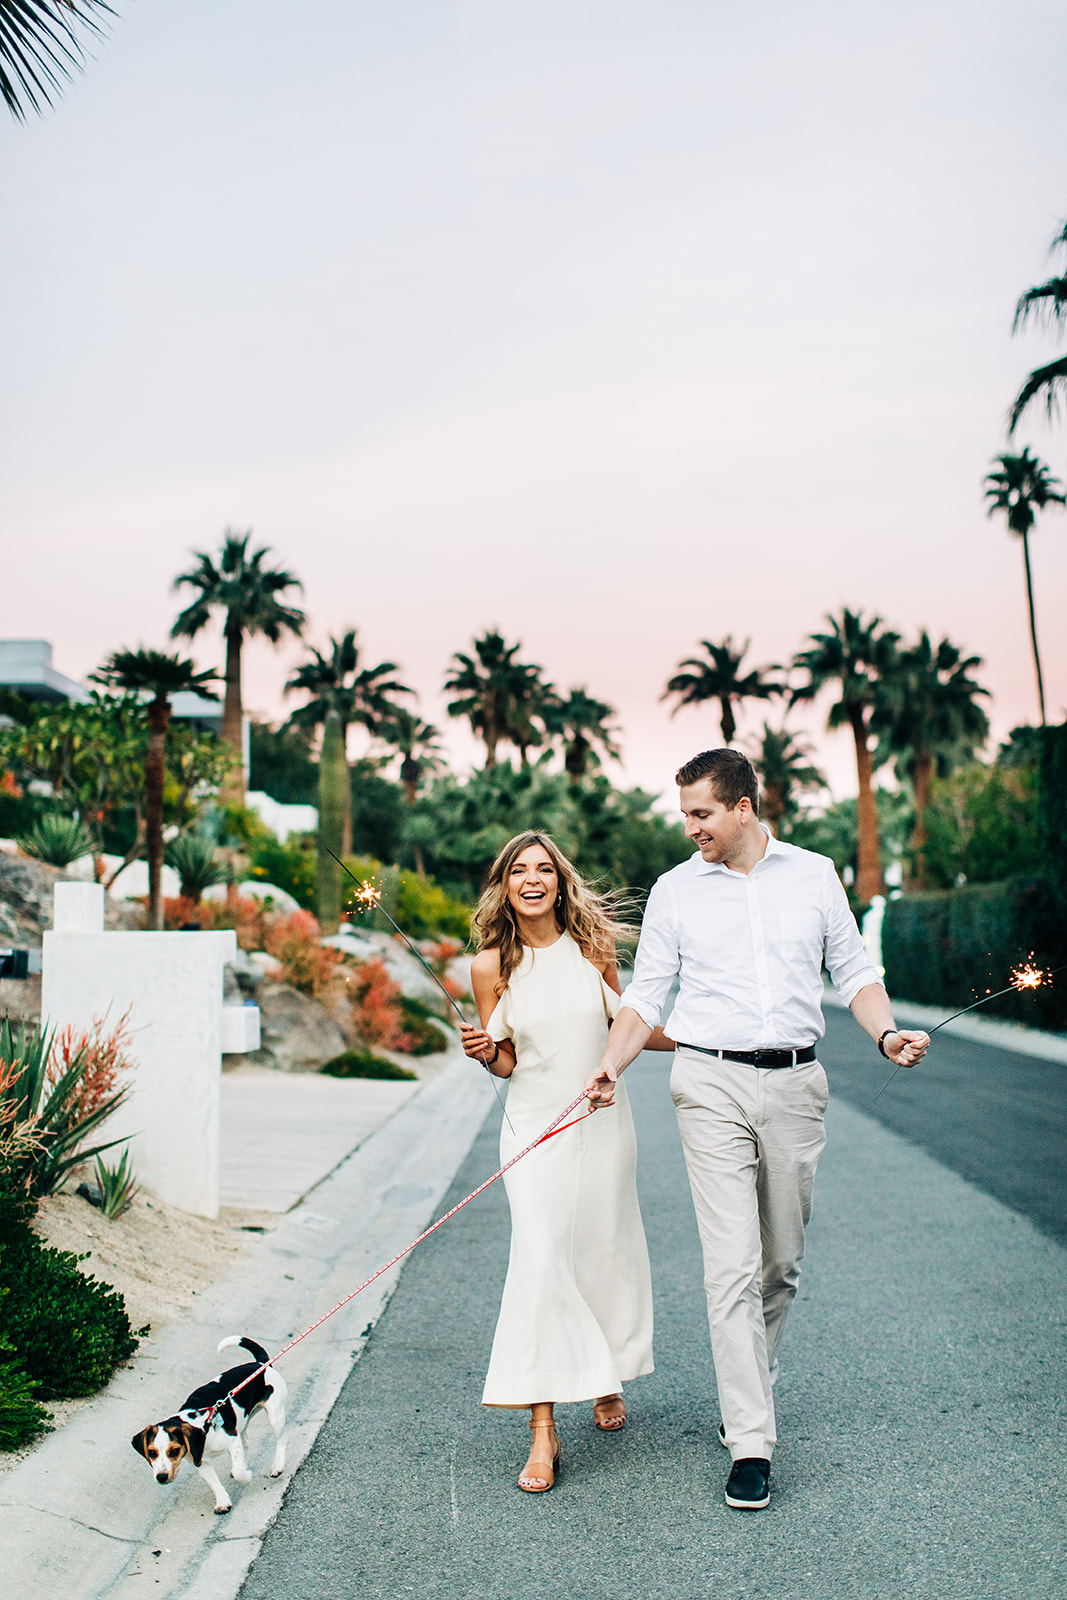 Paulina-Drew_Palm-Springs-Engagement-Photos_Clarisse-Rae_Southern-California-Wedding-Photographer-56